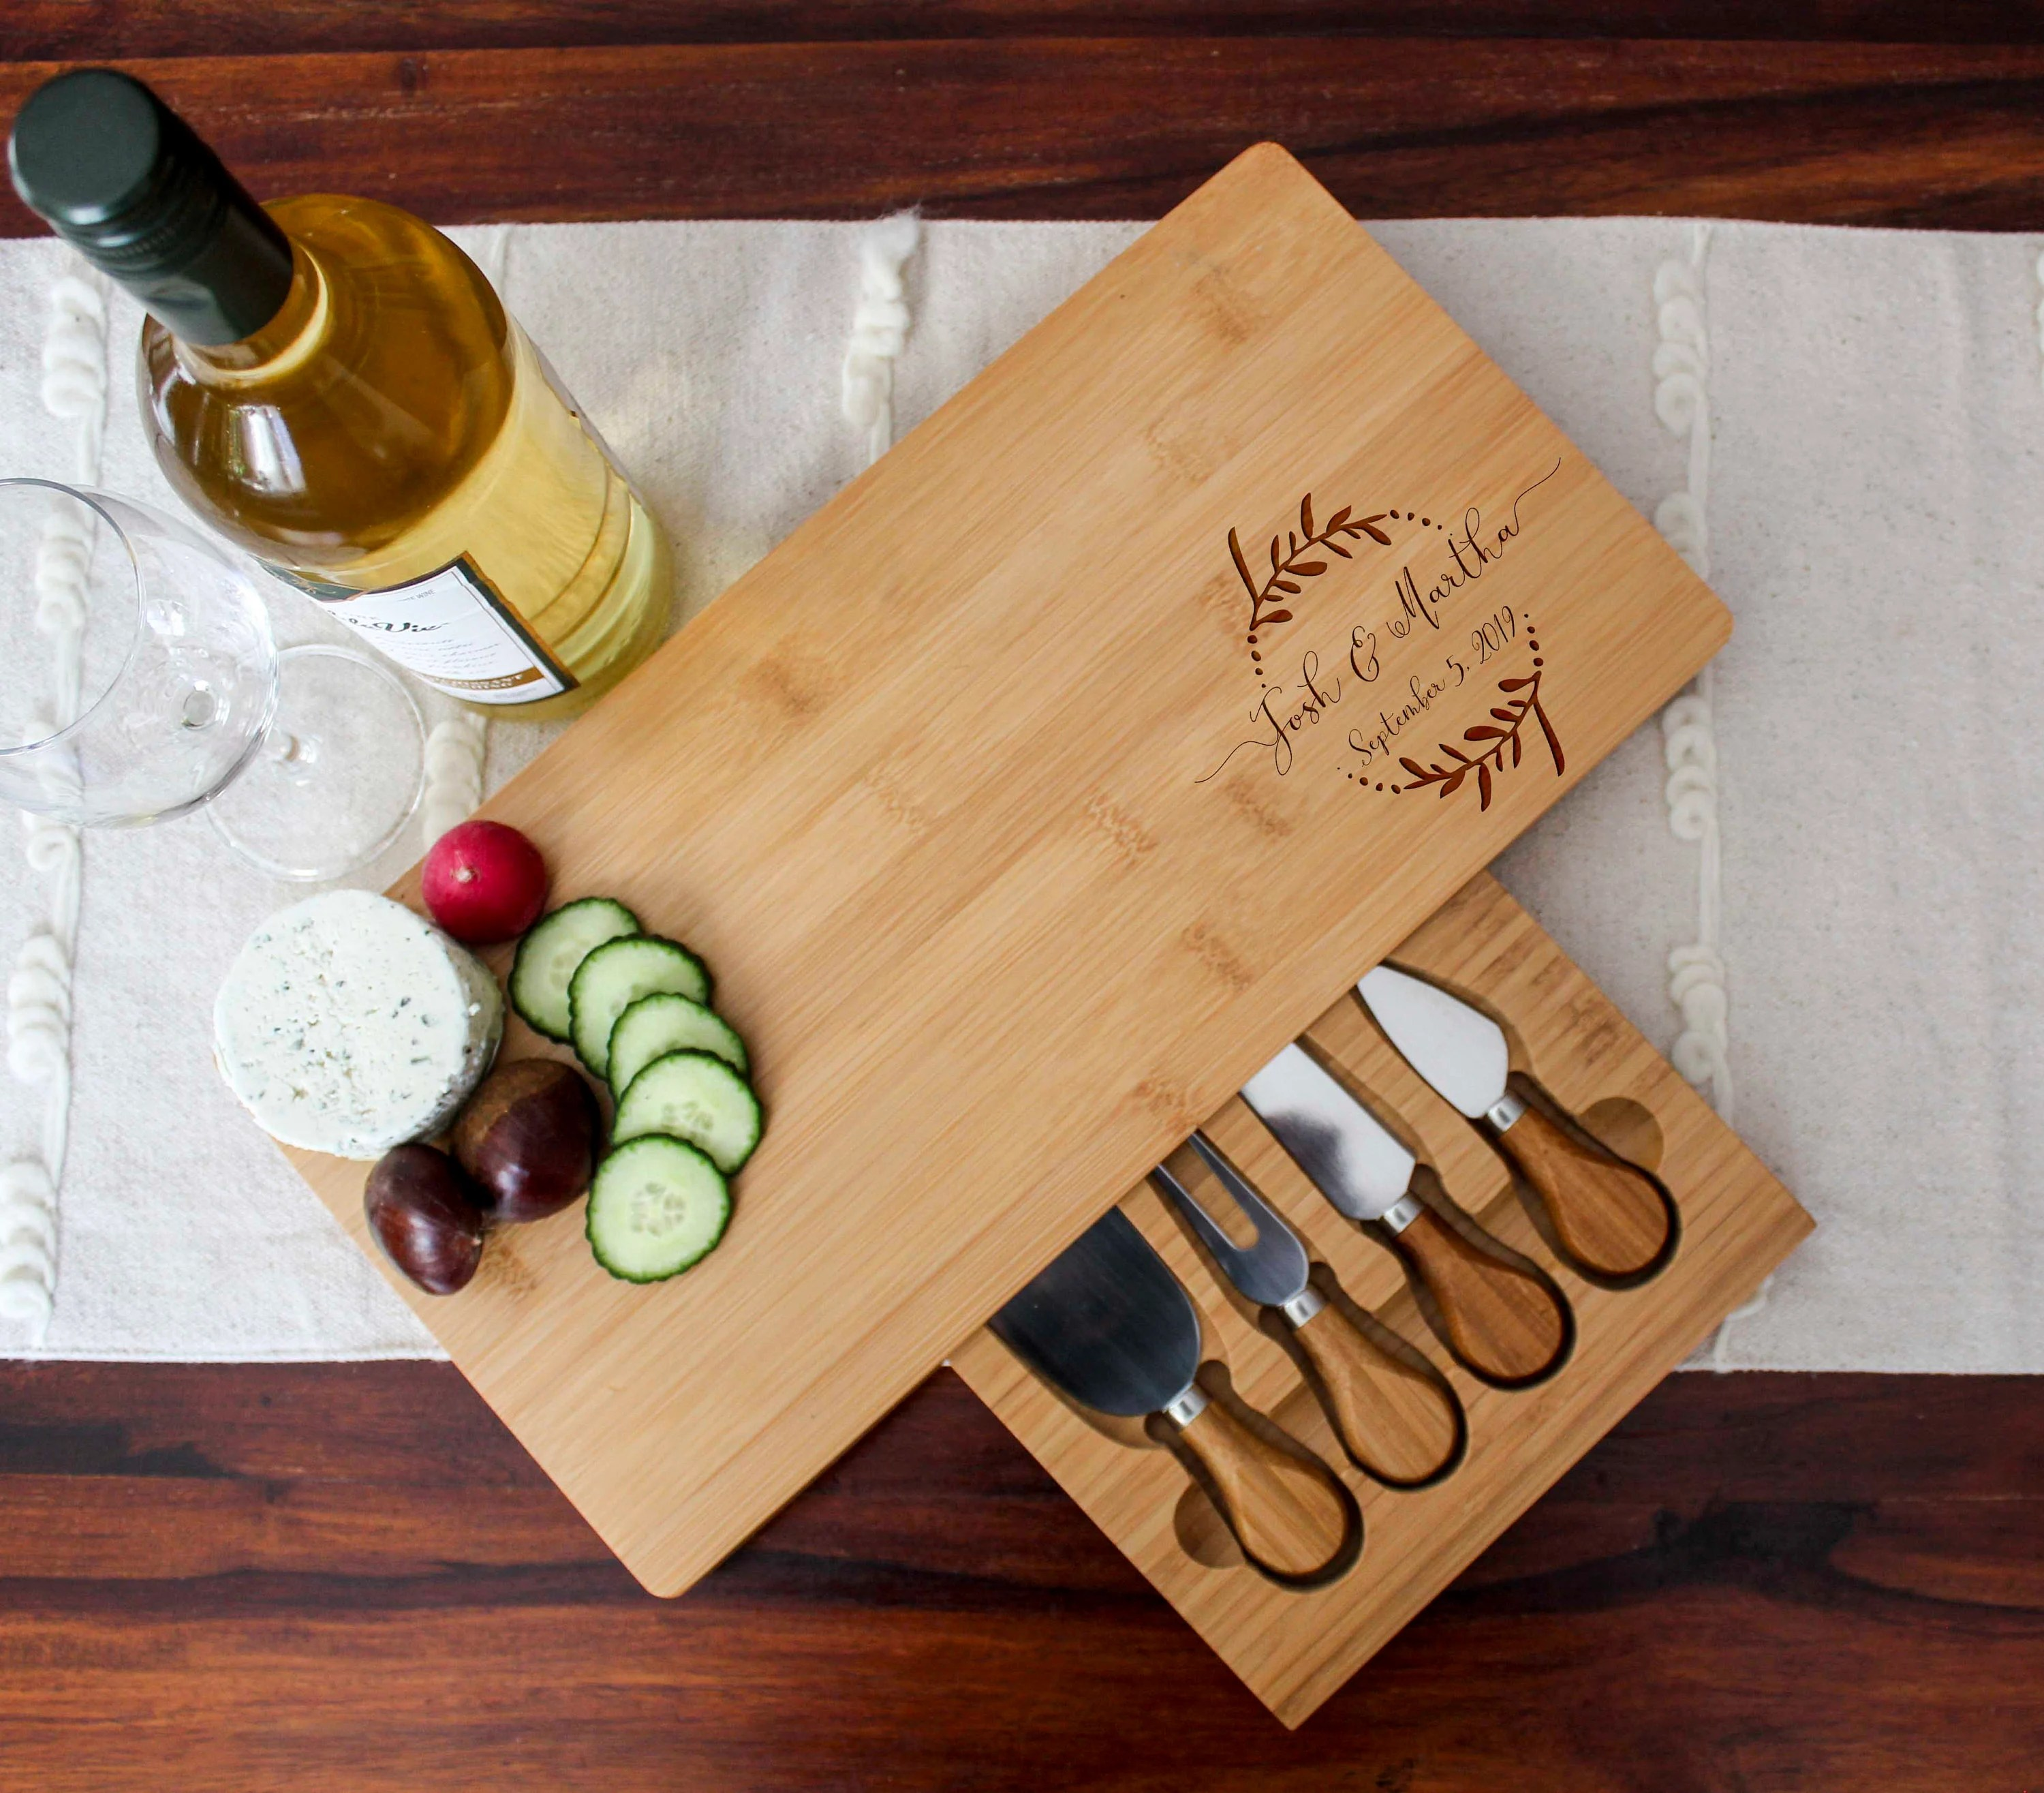 Personalized cheese board set Custom cheese board set image 3